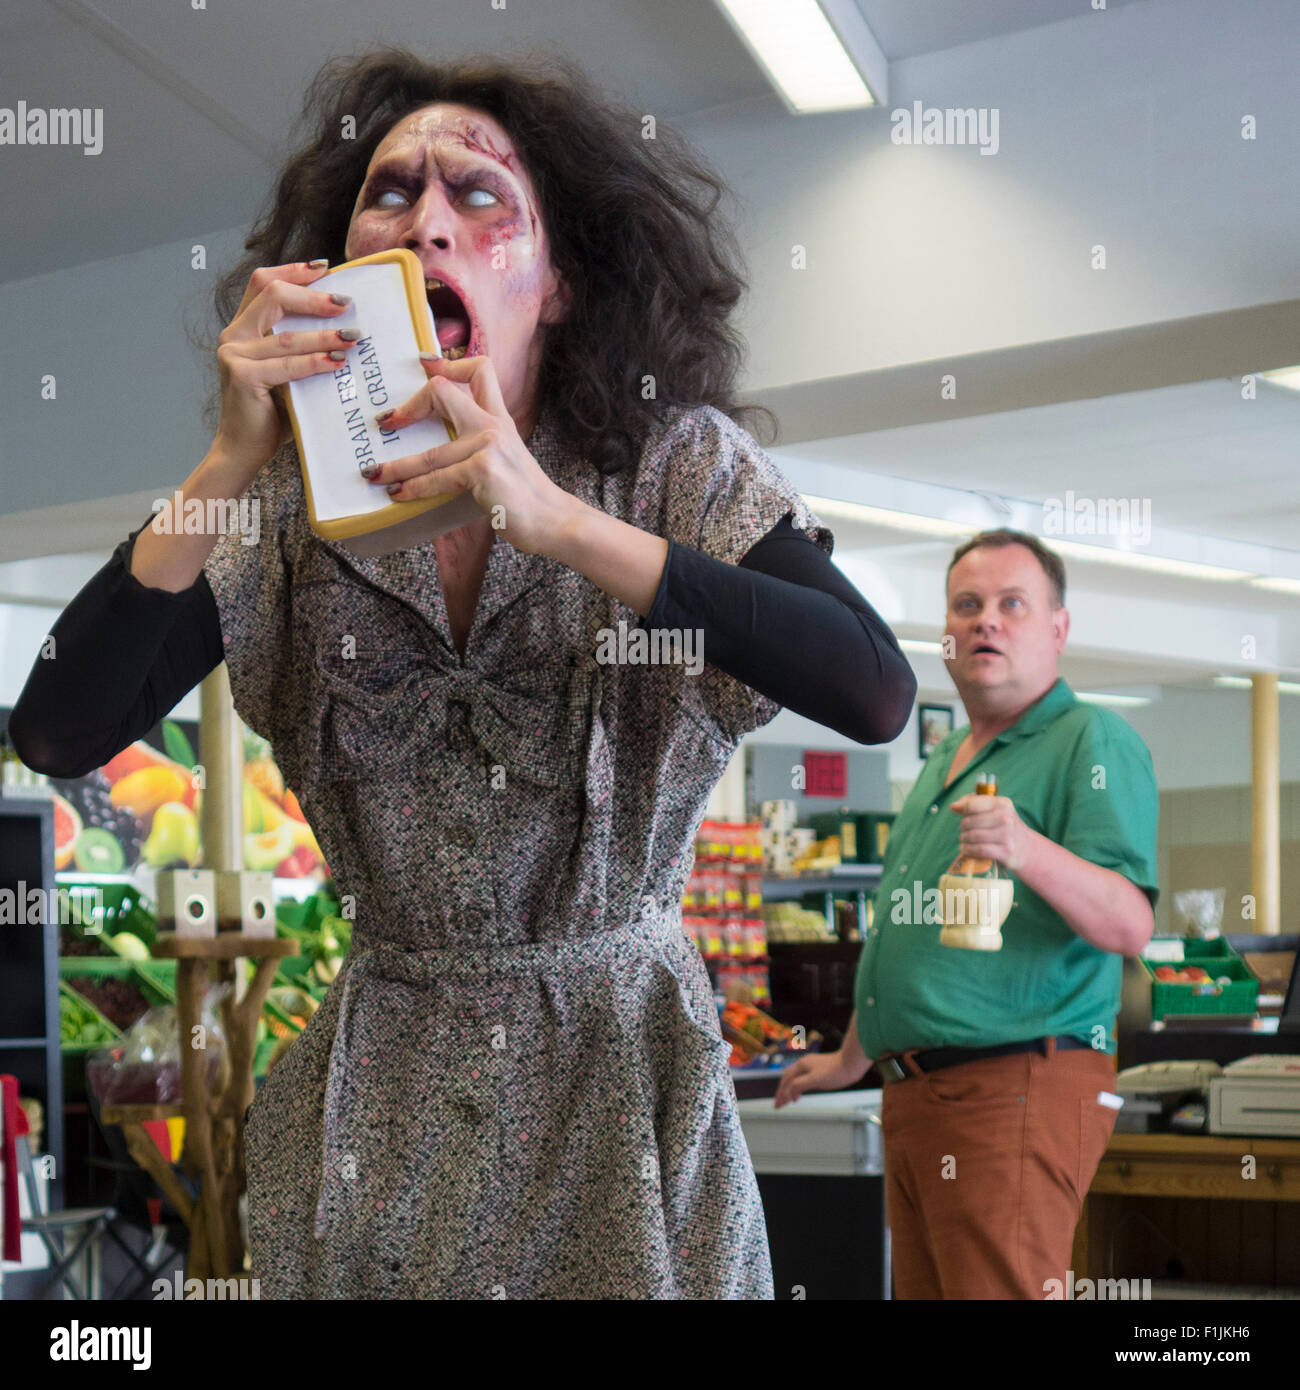 Zombie comedy, short film Brain Freeze, Zombie buying ice cream, astonished cashier behind, scene from zombie comedy - Stock Image